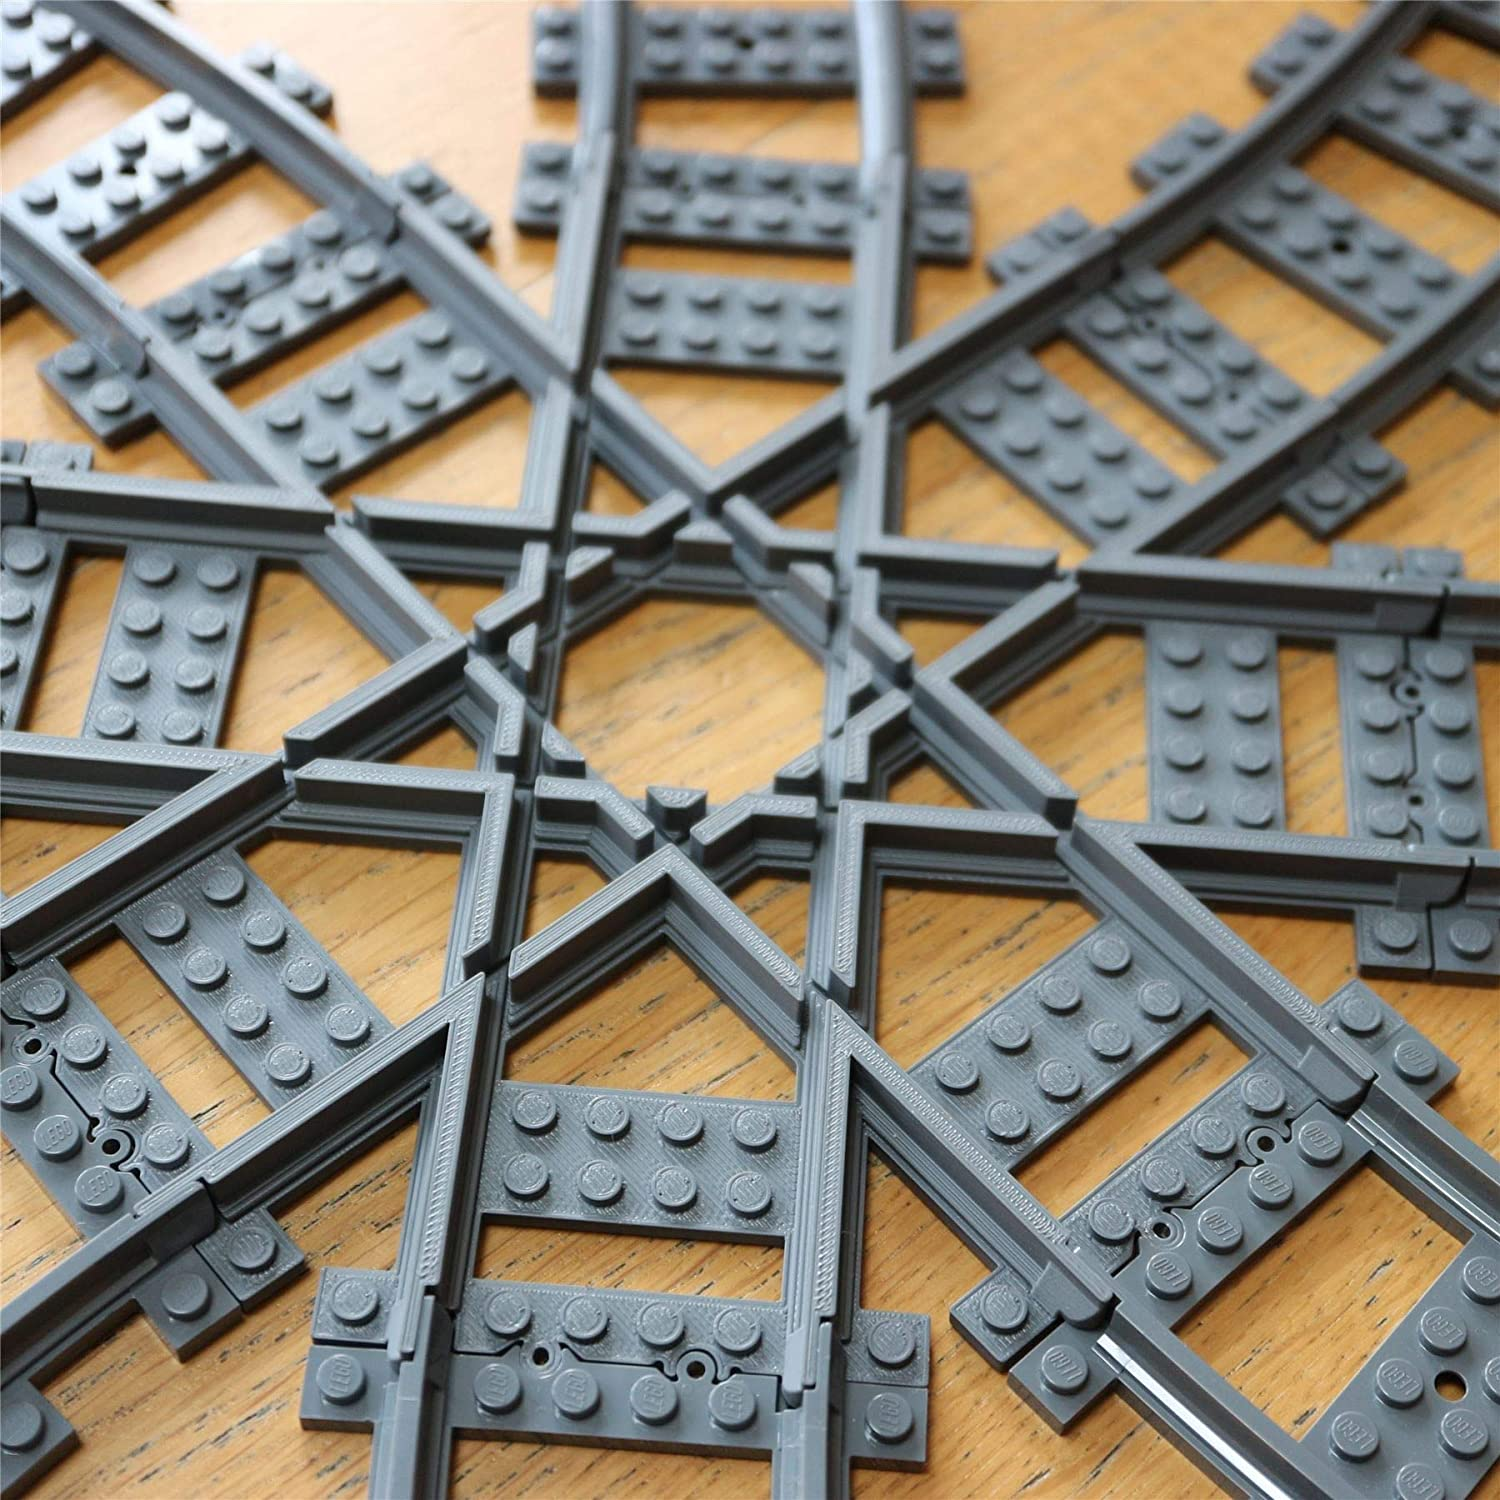 Straight Tracks Crossover Track Multi V2 Compatible with Lego Custom Cross Track Straight Cross Tracks Crossover Compatible with Lego Train Rails and Sets